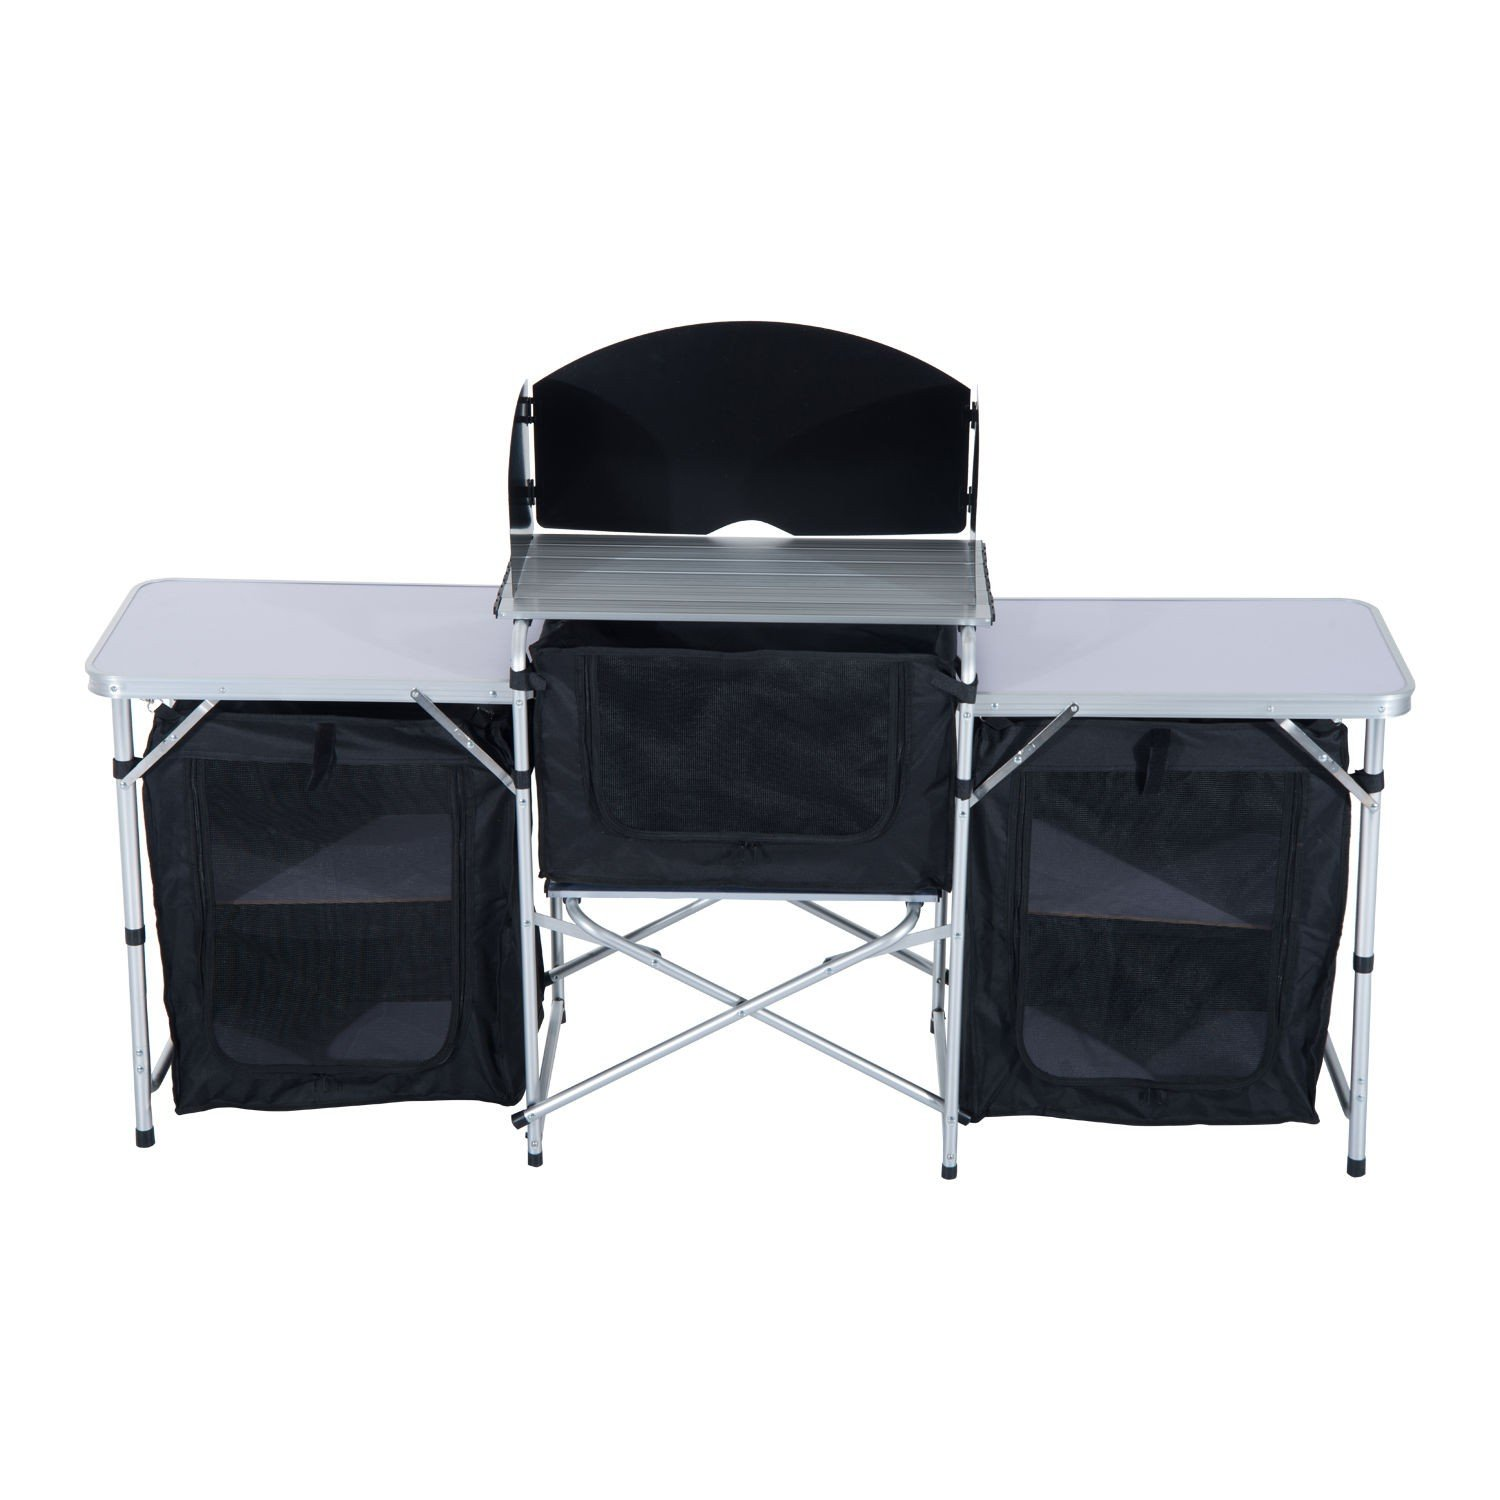 Camping Picnic Tables Deluxe Portable Fold-Up Camp Kitchen Storage Station With Ebook